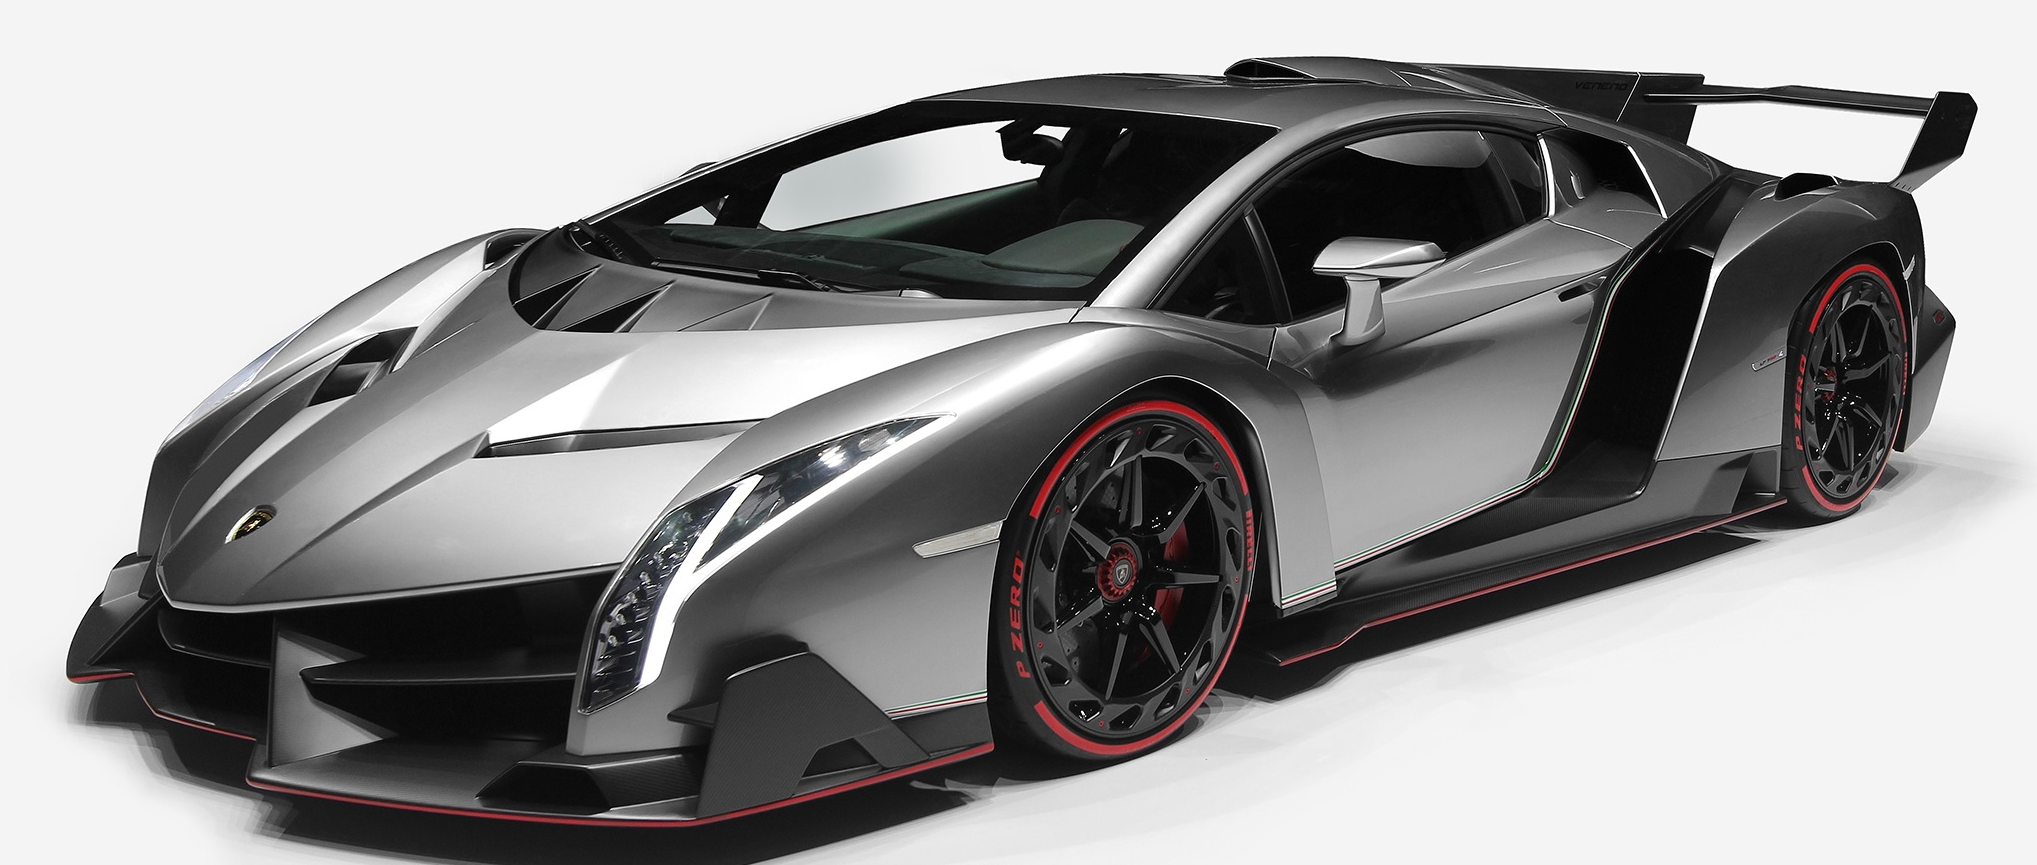 Aggressive body styling and ultra-limited production make the Lamborghini Veneno one of the most recognizable and desired exotic supercars ever manufactured in Sant'Agata Bolognese.